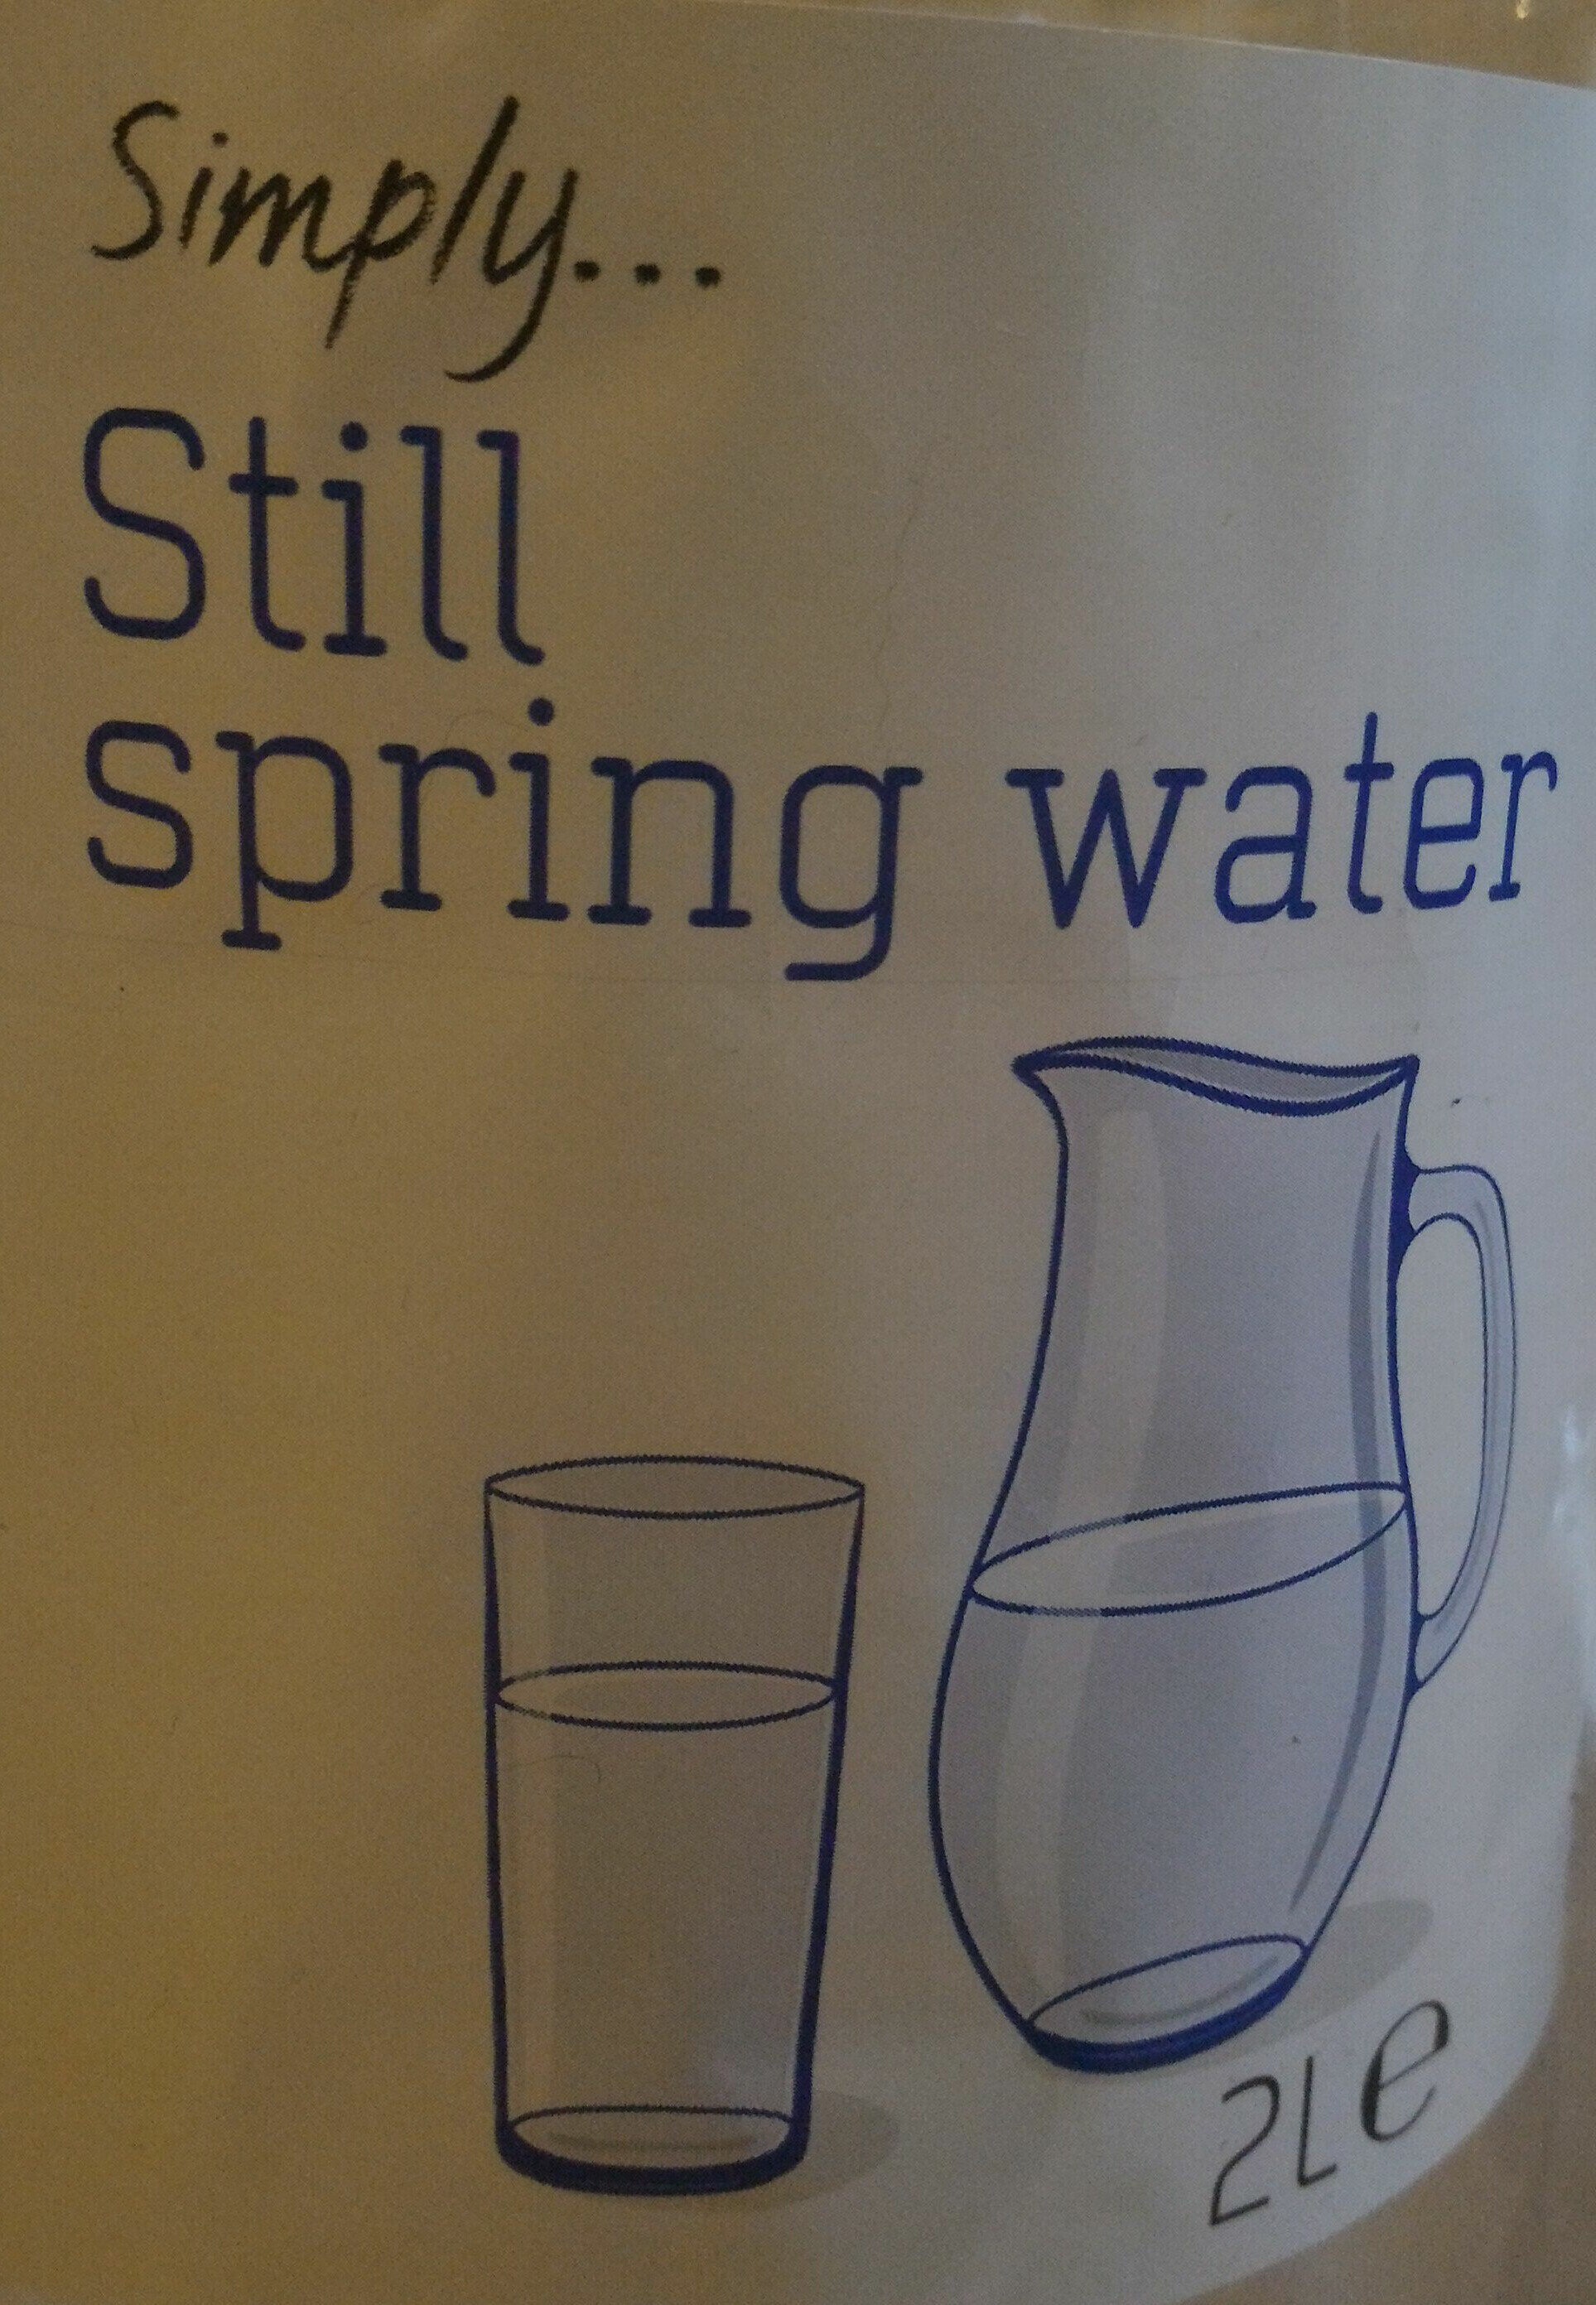 Still spring water - Product